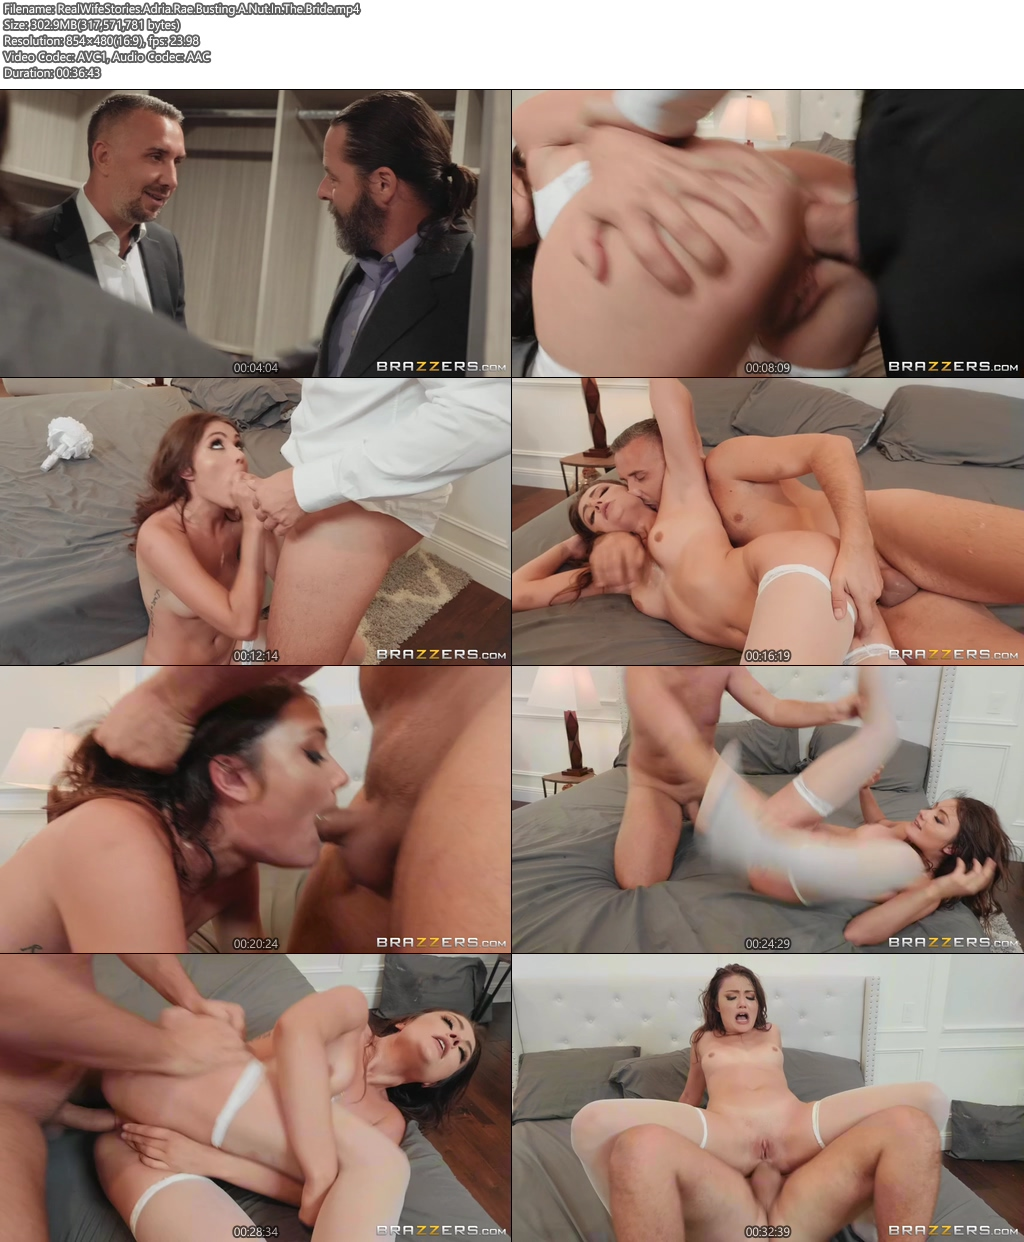 [18+] RealWifeStories New 2019 clip Adria Rae Busting A Nut In The Bride XXX Screenshot